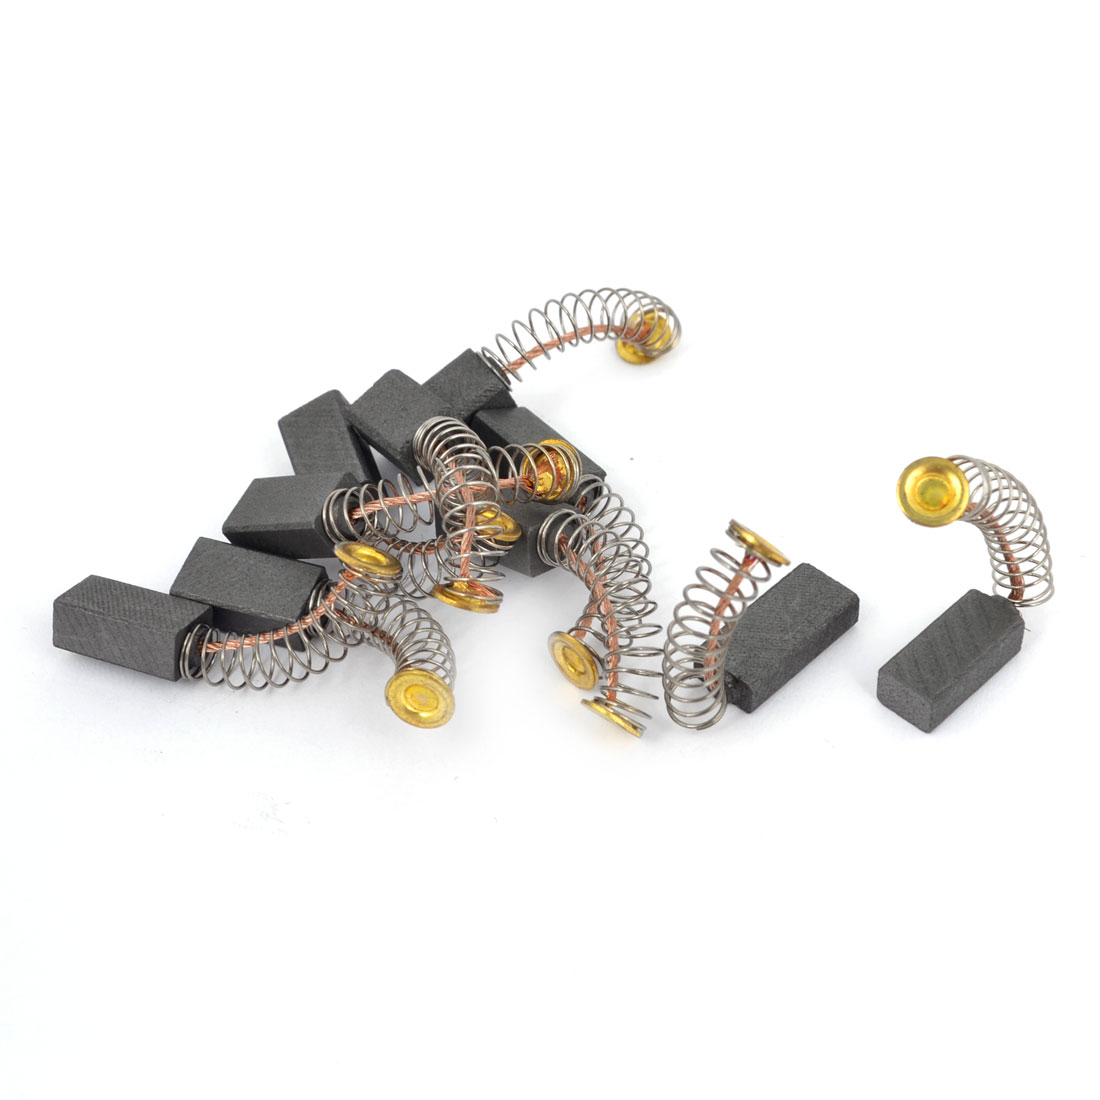 5 Pairs 13mm x 7mm x 5mm Electric Motor Carbon Brushes for Power Tool